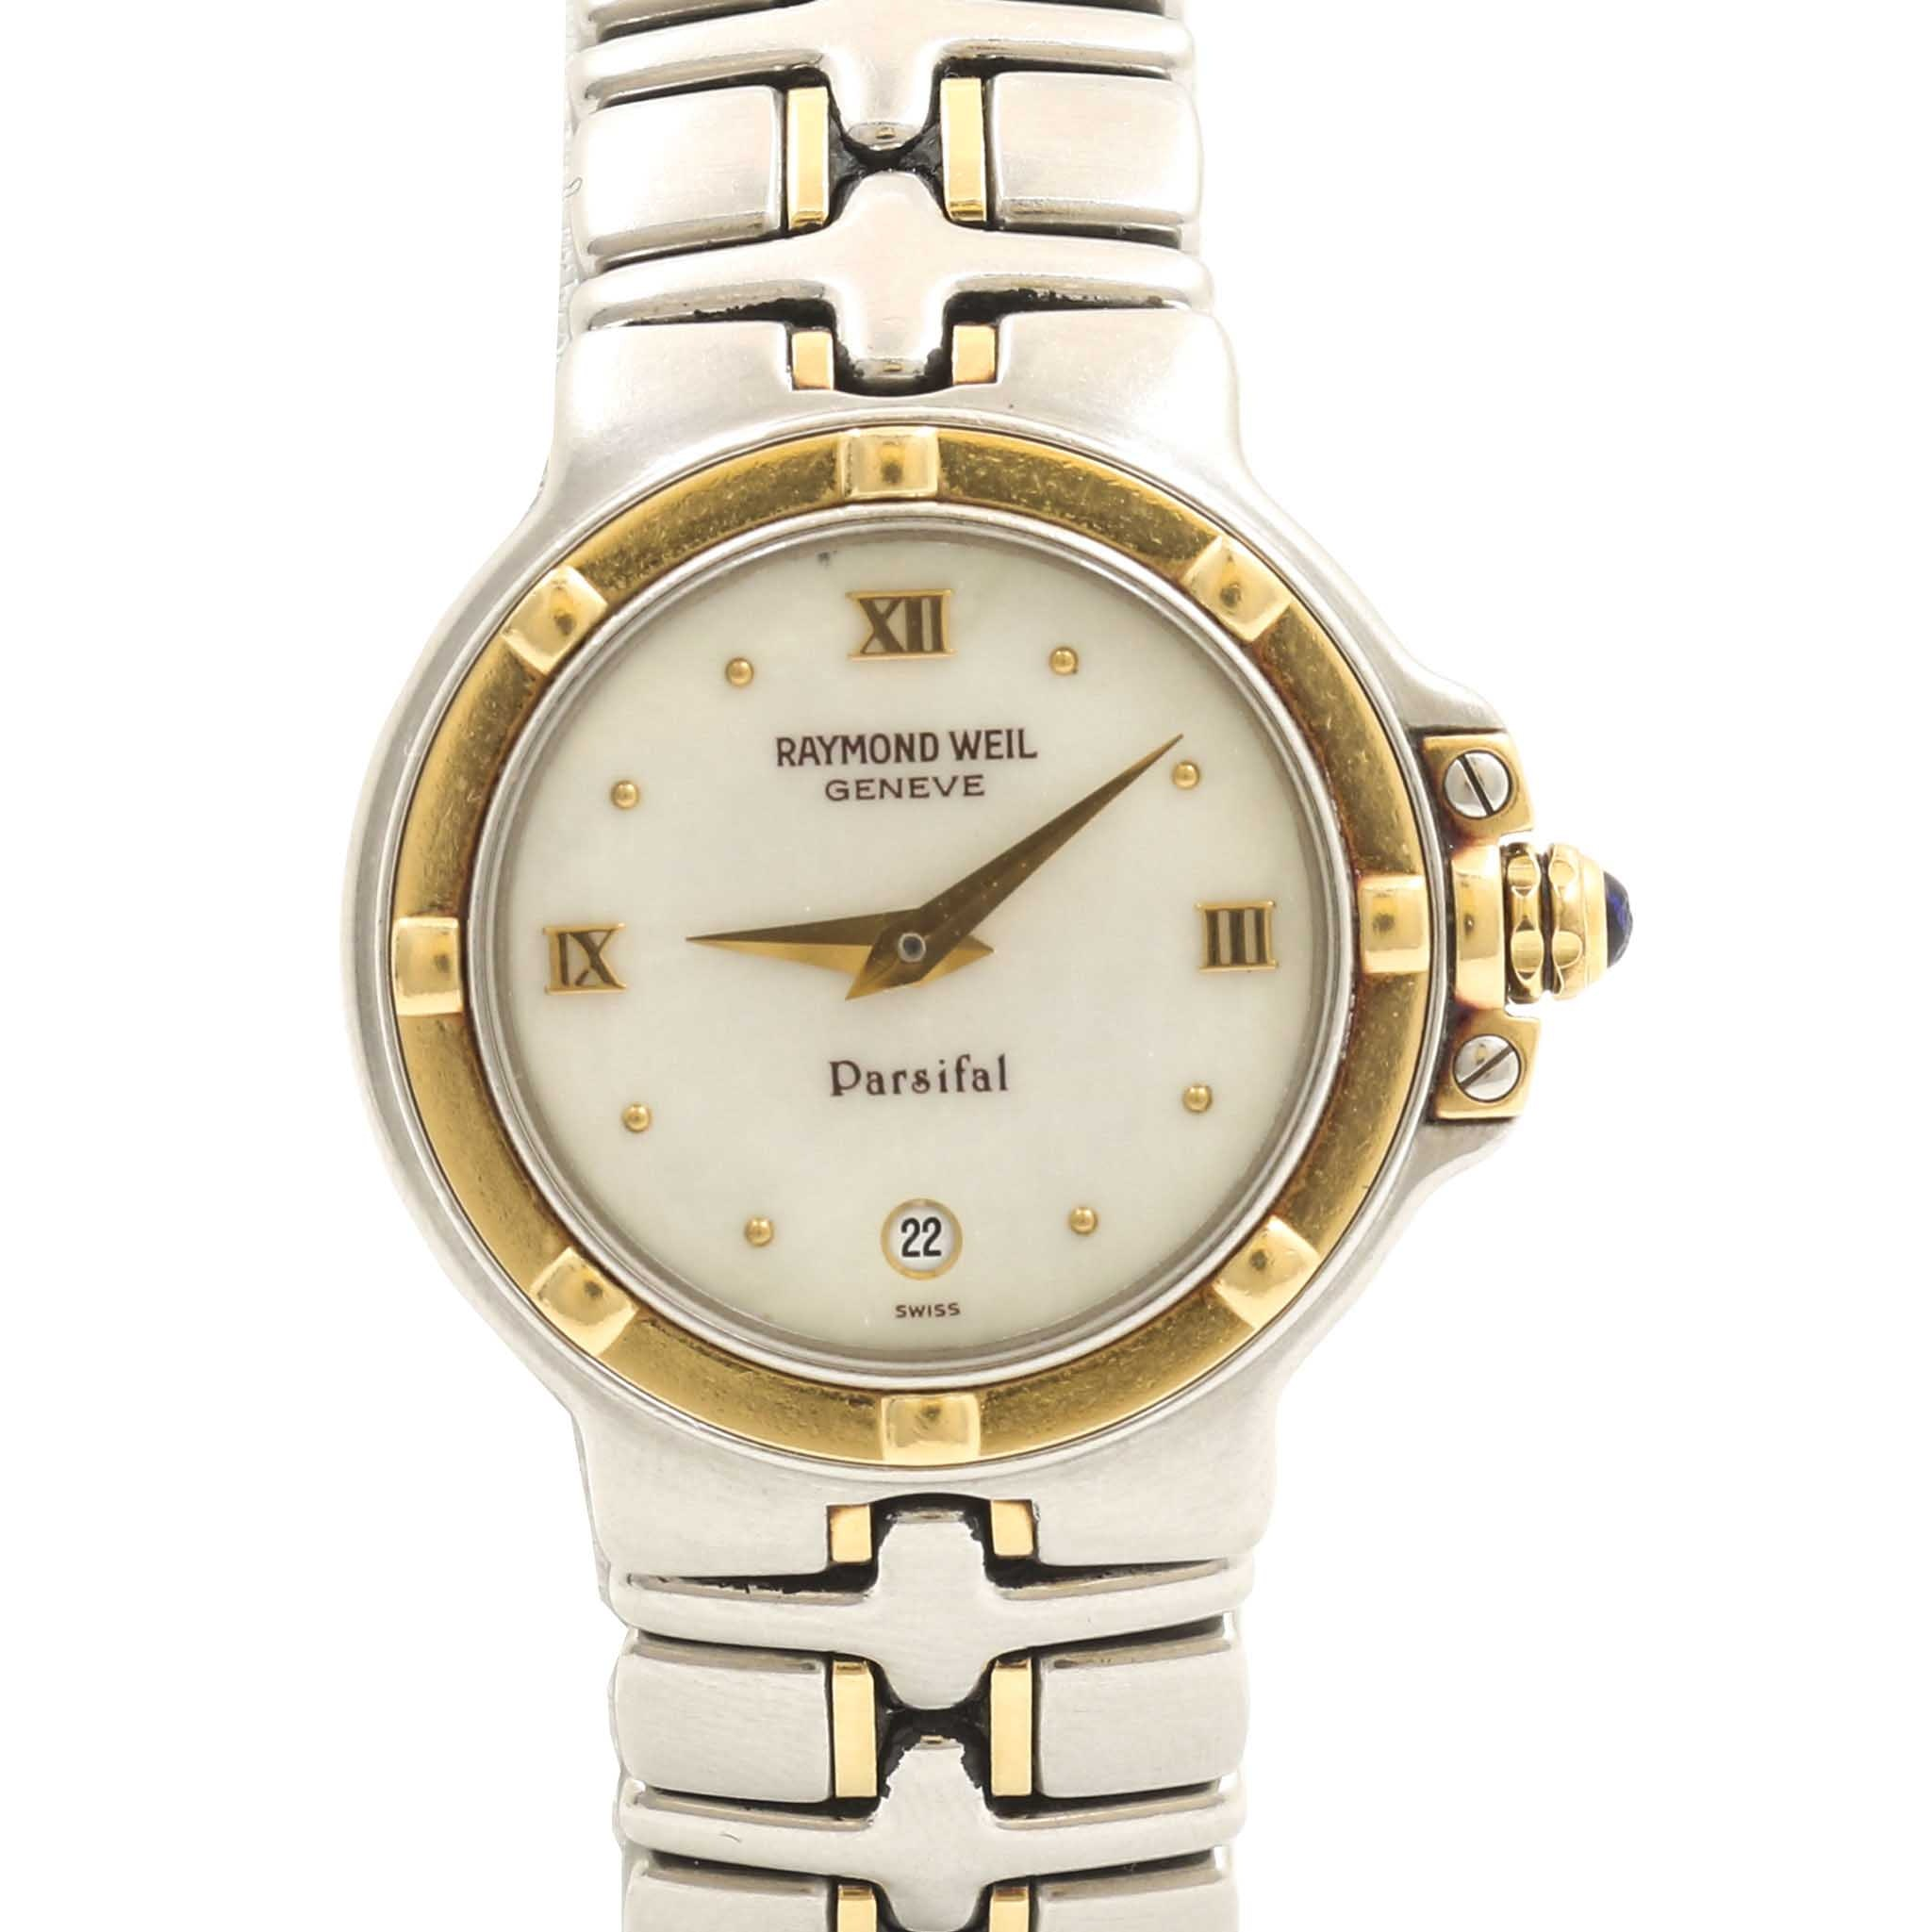 Raymond Weil Geneve Parsifal All Stainless Wristwatch